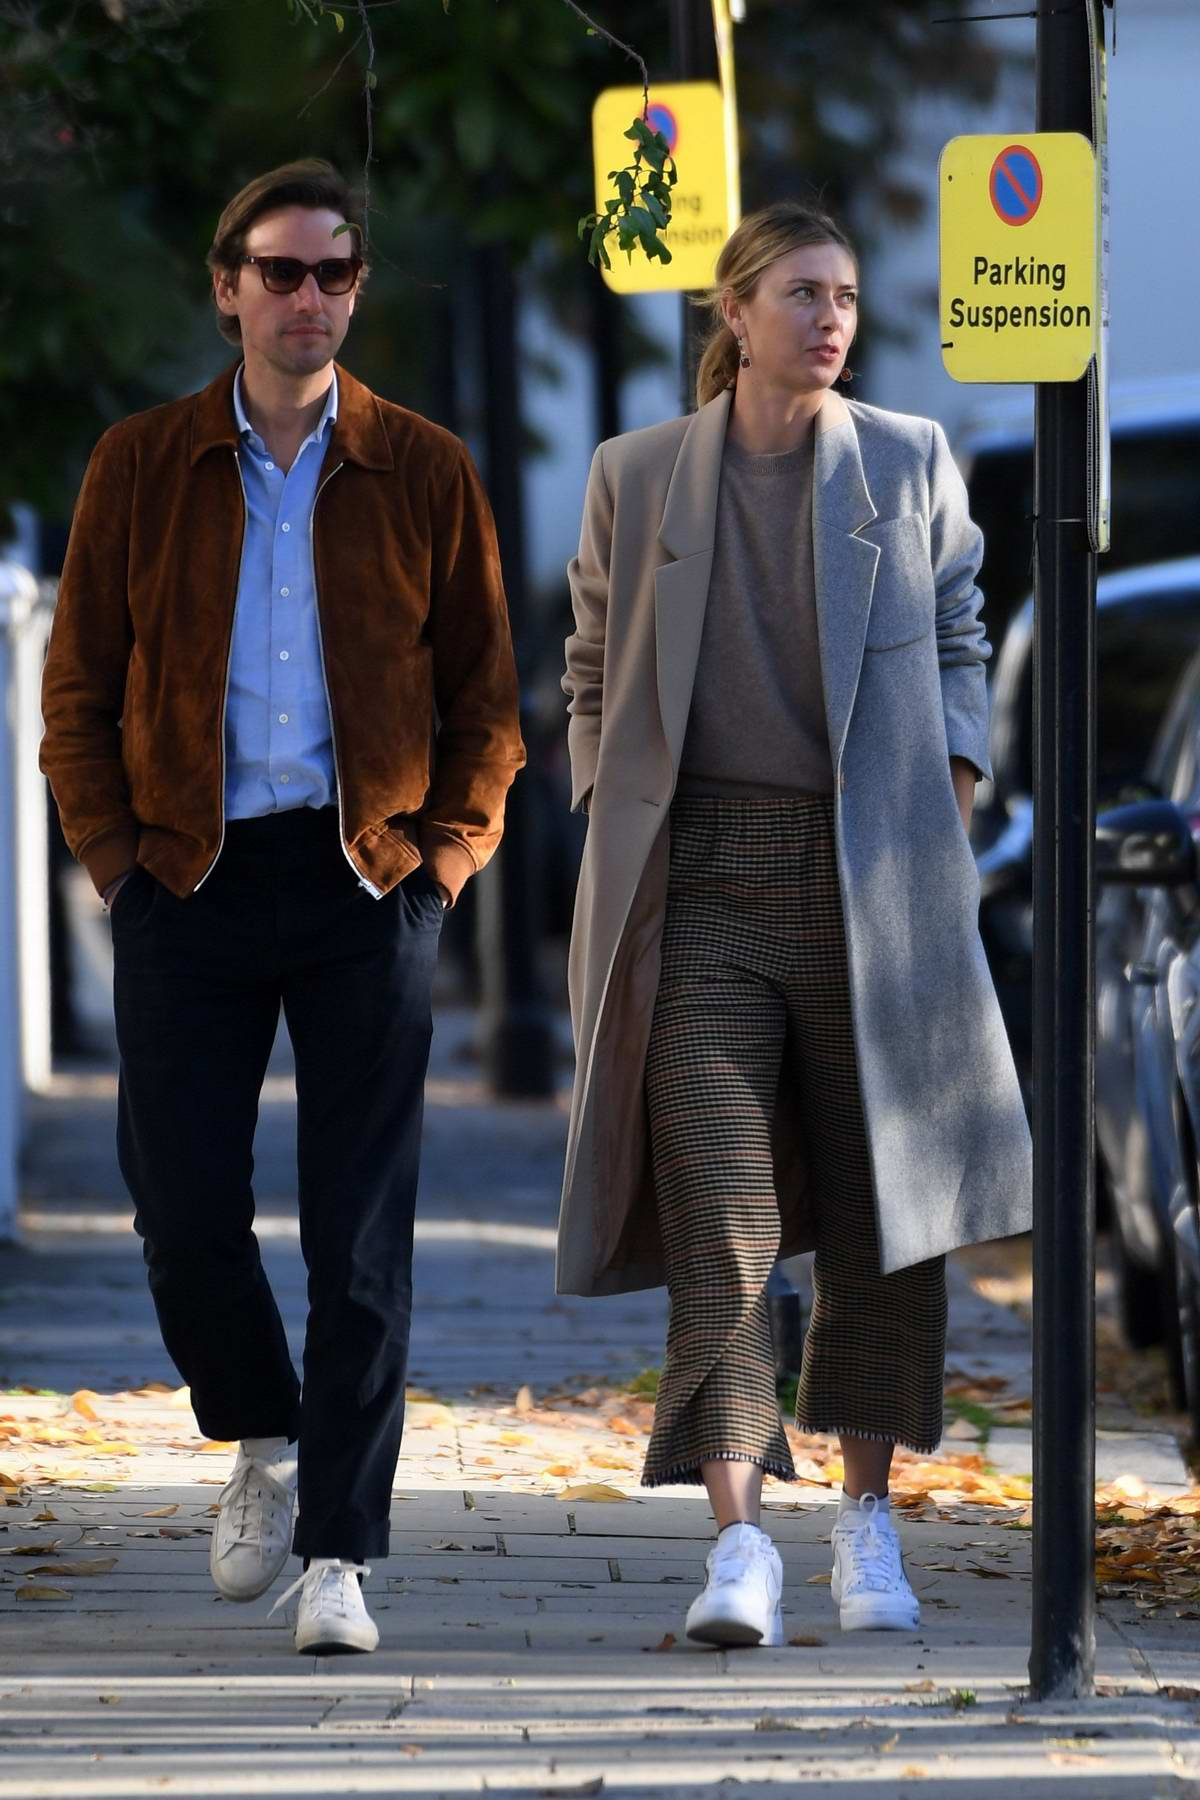 Maria Sharapova steps out for a walk with new boyfriend Alexander Gilkes in Fulham, UK